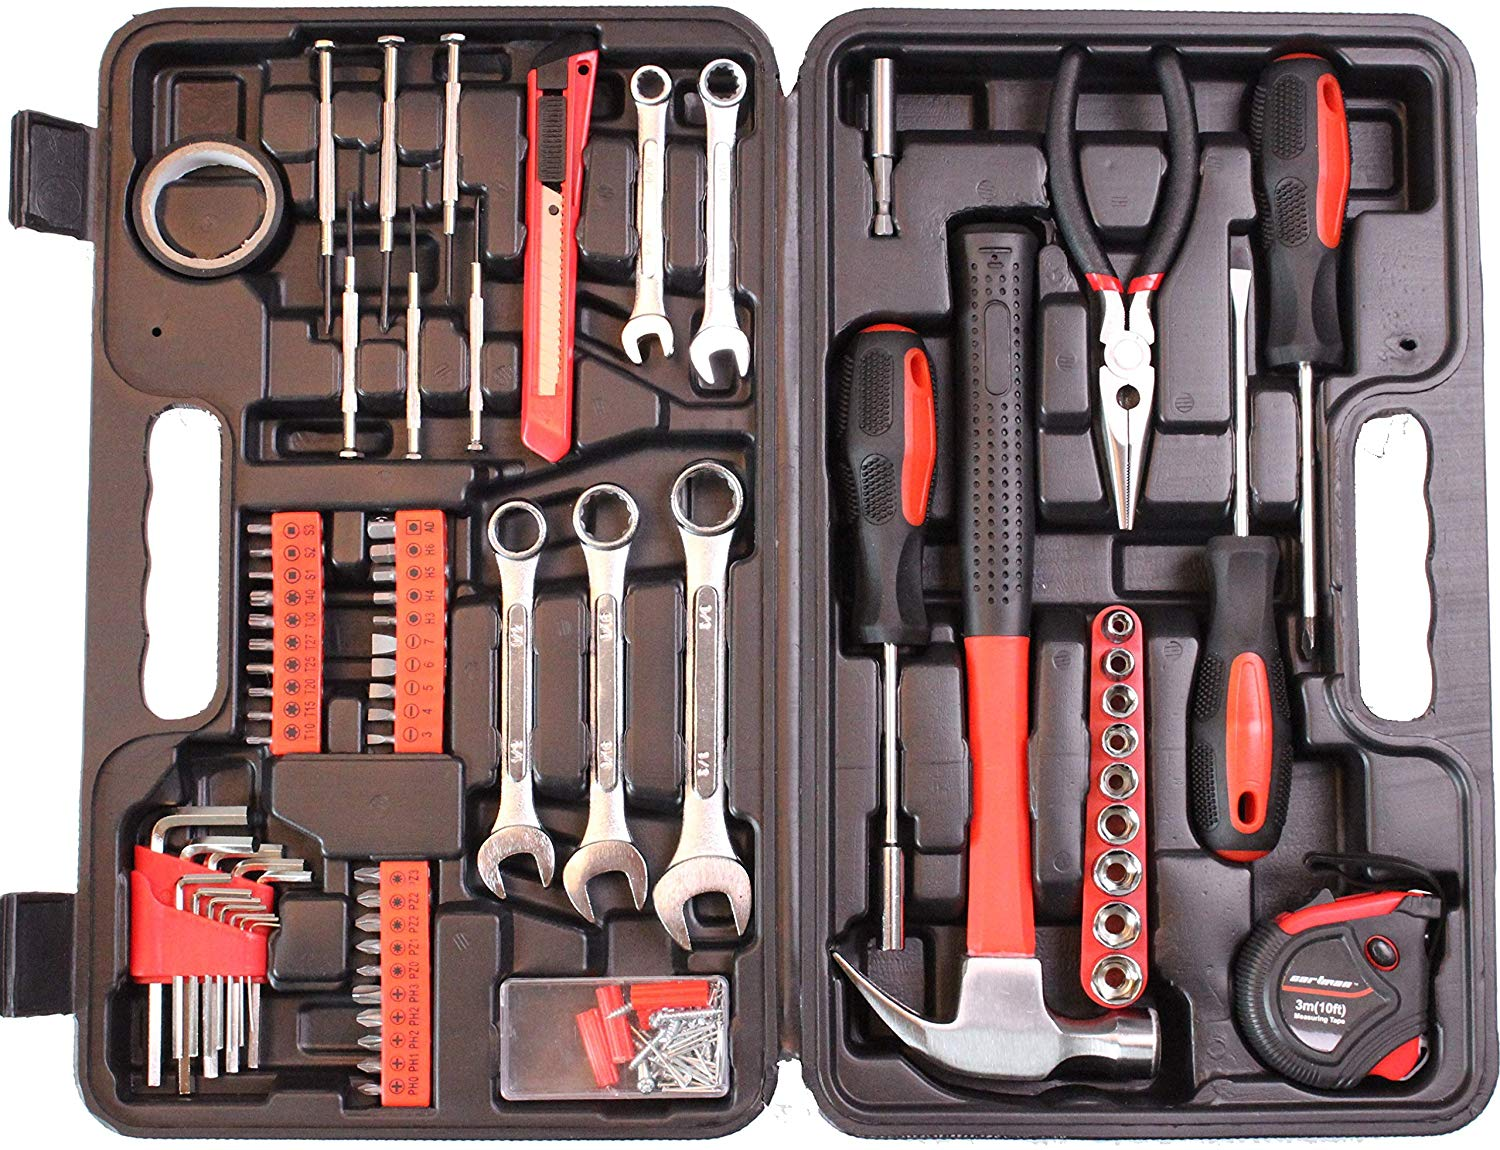 Cartman CMTK148-16 - Car Tool Kit